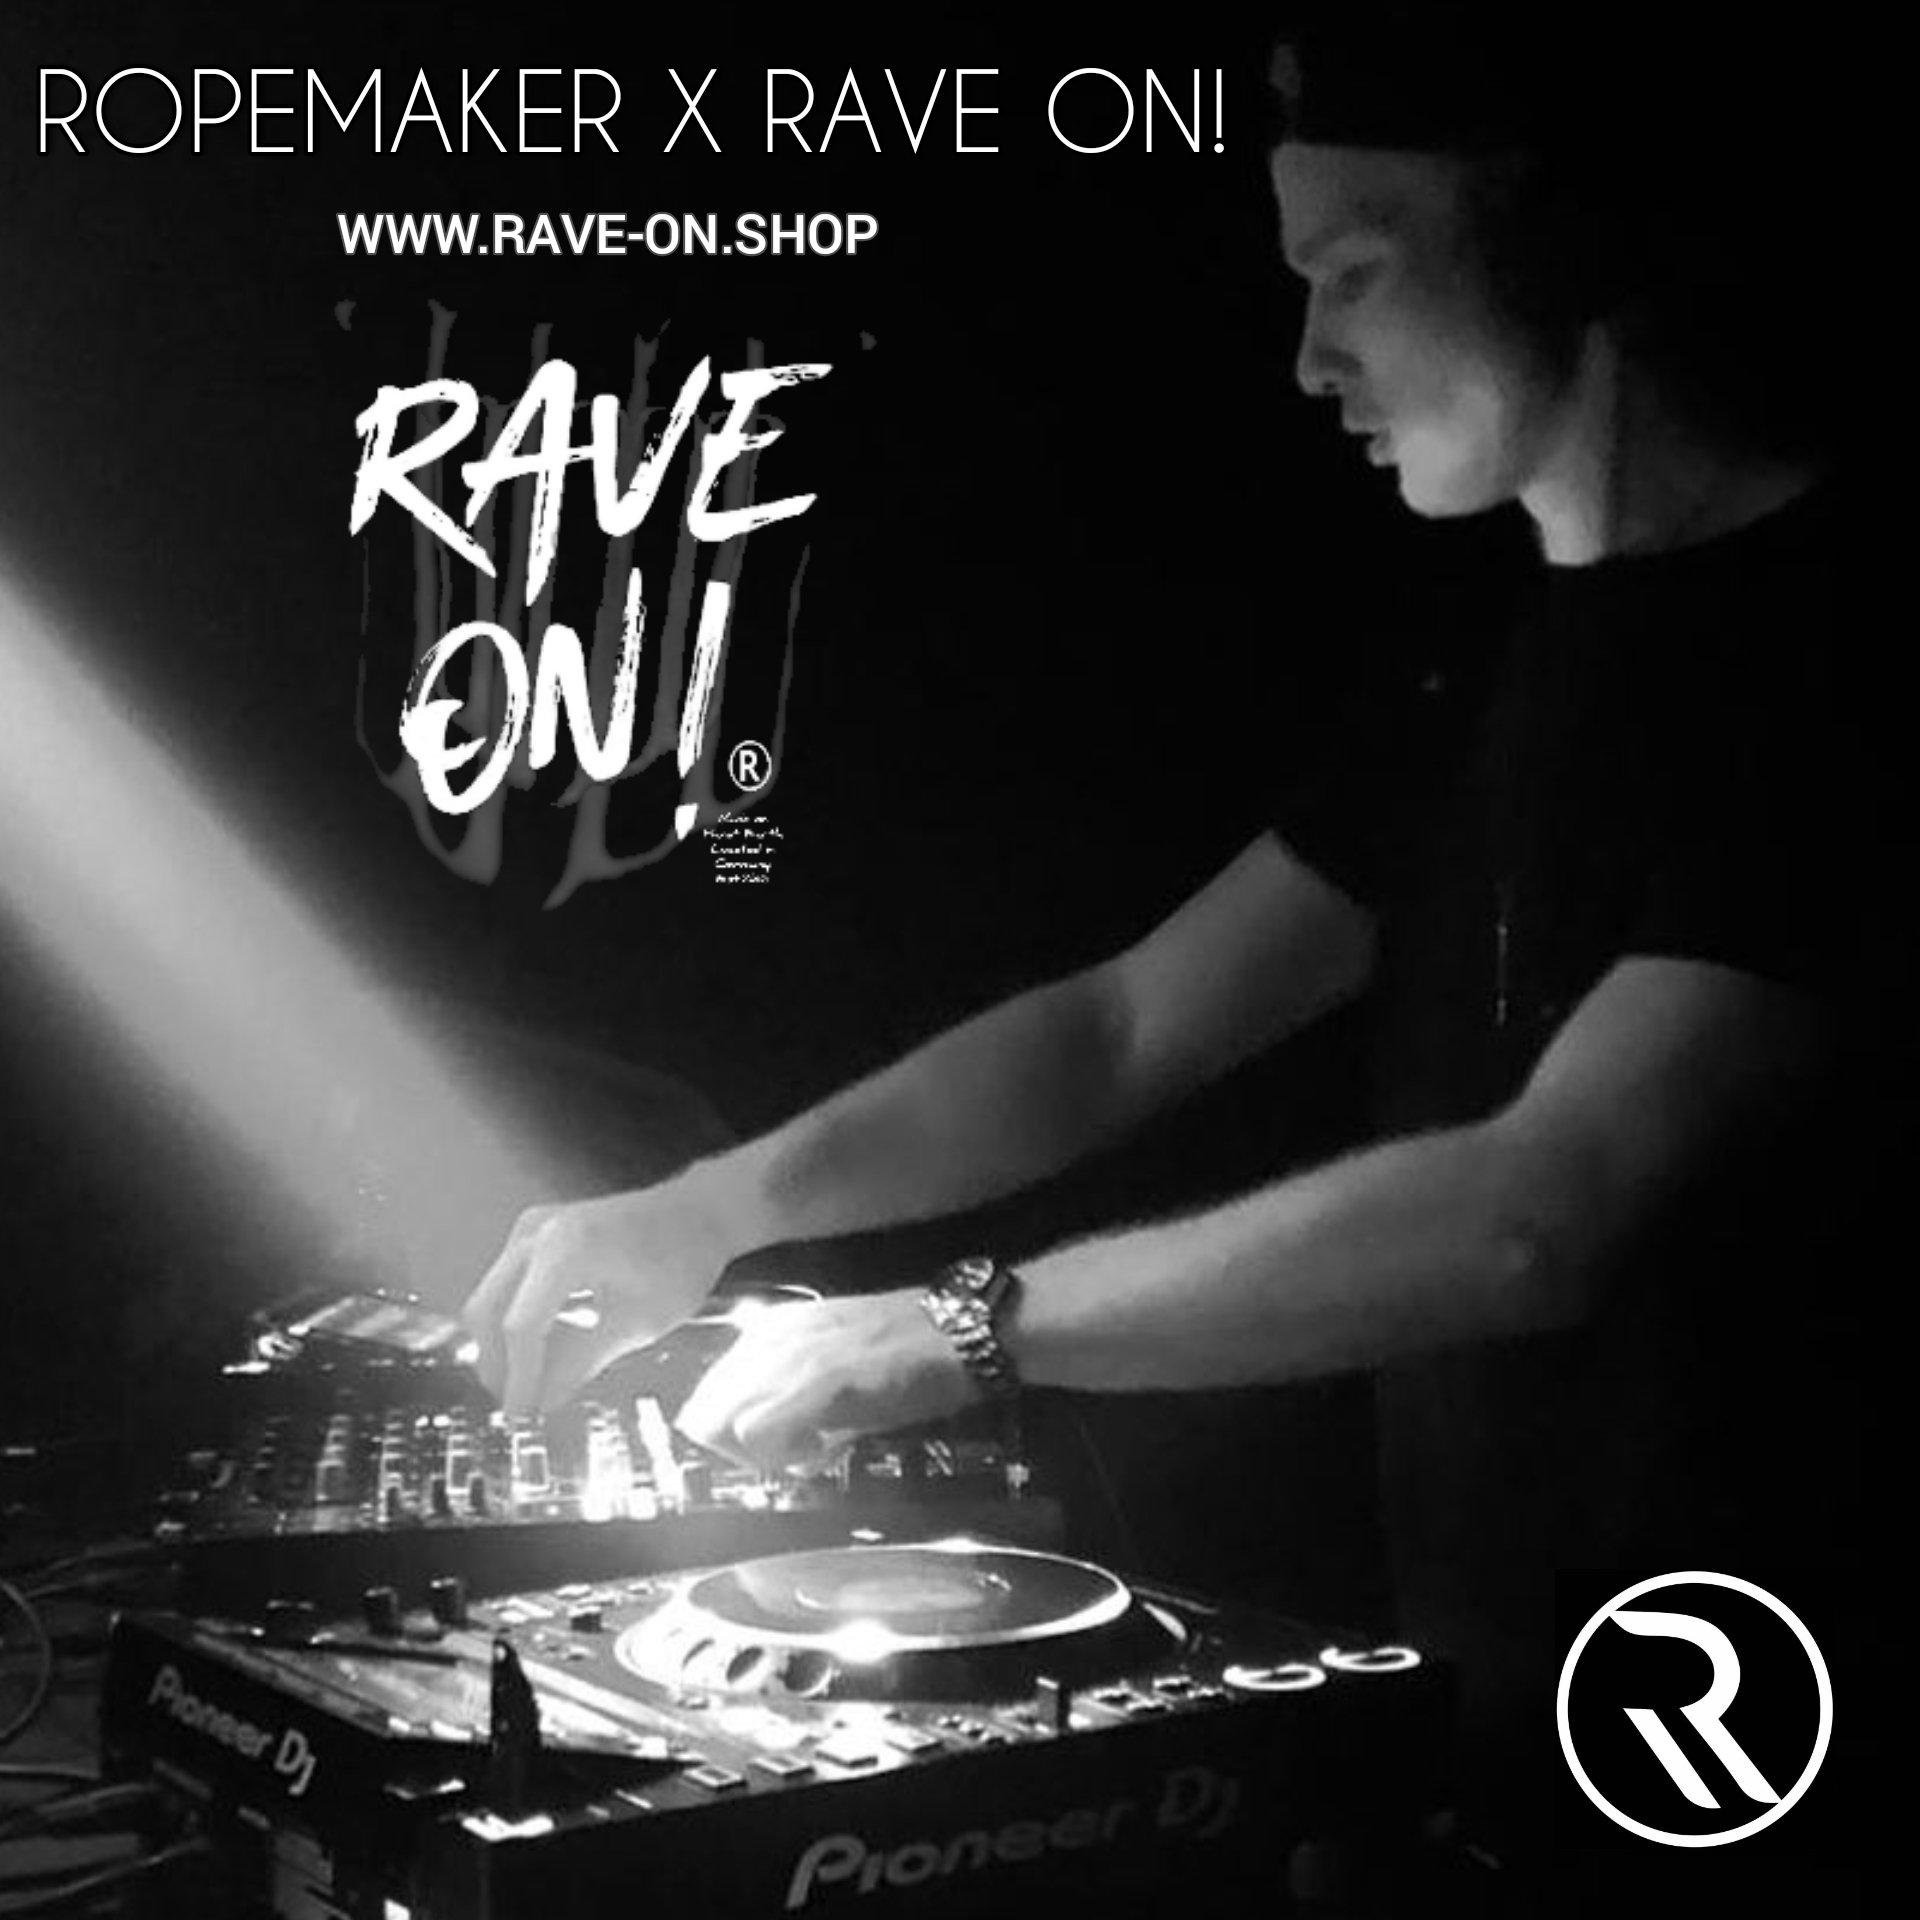 ROPEMAKER RAVE-ON!®️ GREY UNISEX HOODIE - Unisex Organic Hoodie Cruiser Hoodie ST/ST - Rave On!® der Club & Techno Szene Shop für Coole Junge Mode Streetwear Style & Fashion Outfits + Sexy Festival 420 Stuff